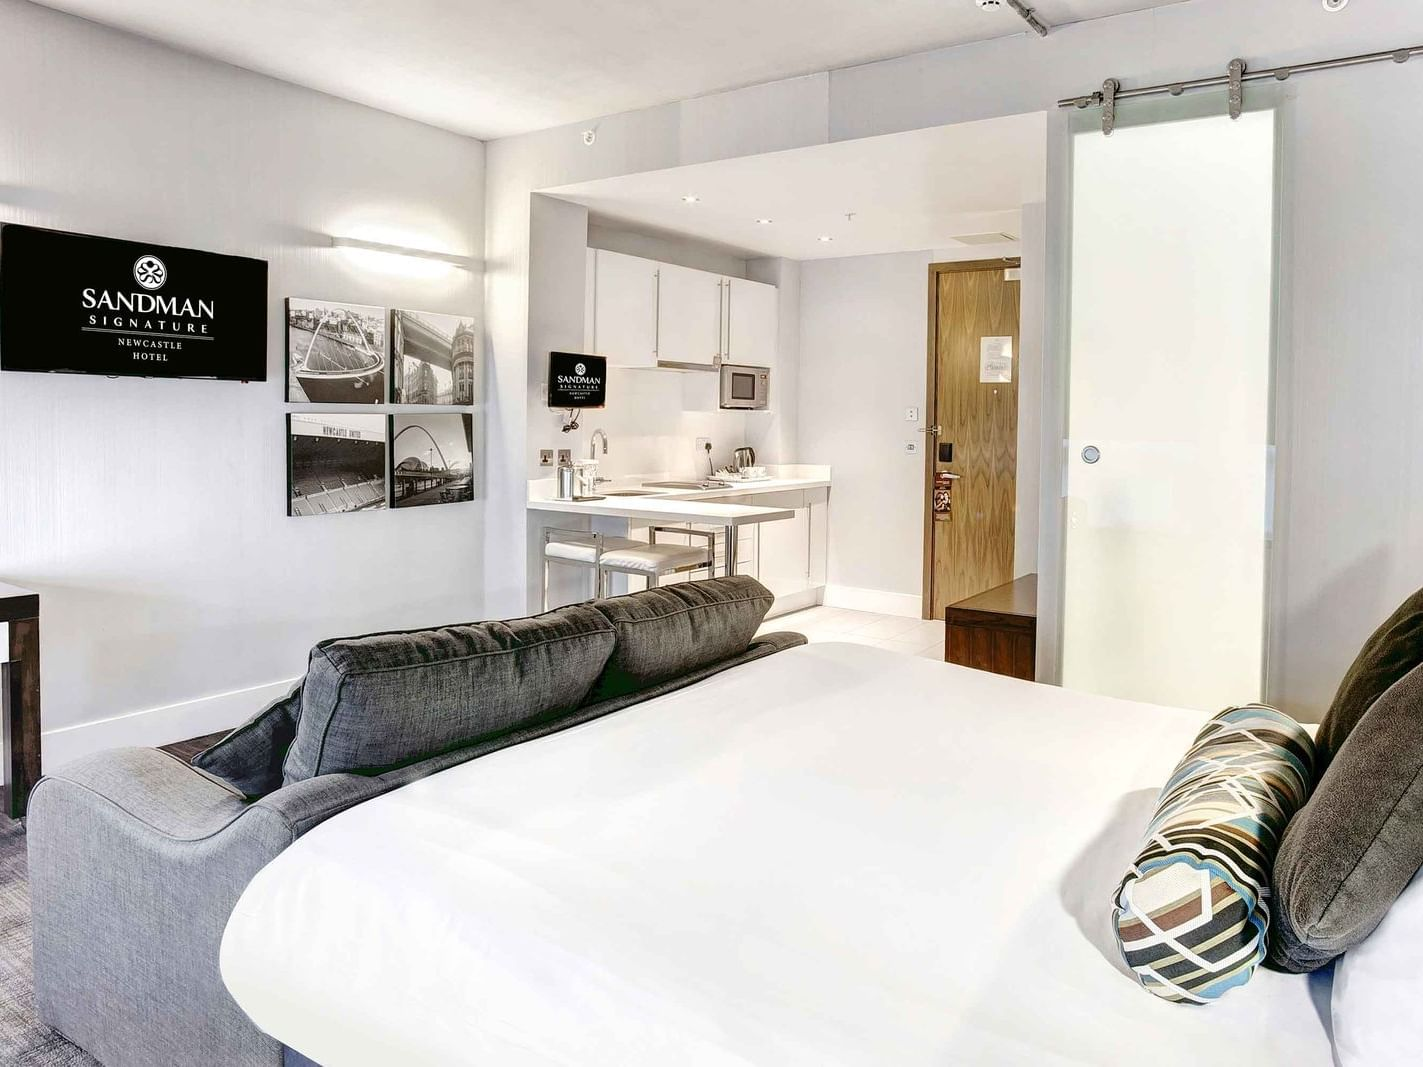 The Corporate King Studio at Sandman Signature Newcastle Hotel with one super king ked (with premium pillow-top), one pull-out sofa bed, a flat-screen tv and small pantry with kitchen supplies and white pantry cupboards on the side